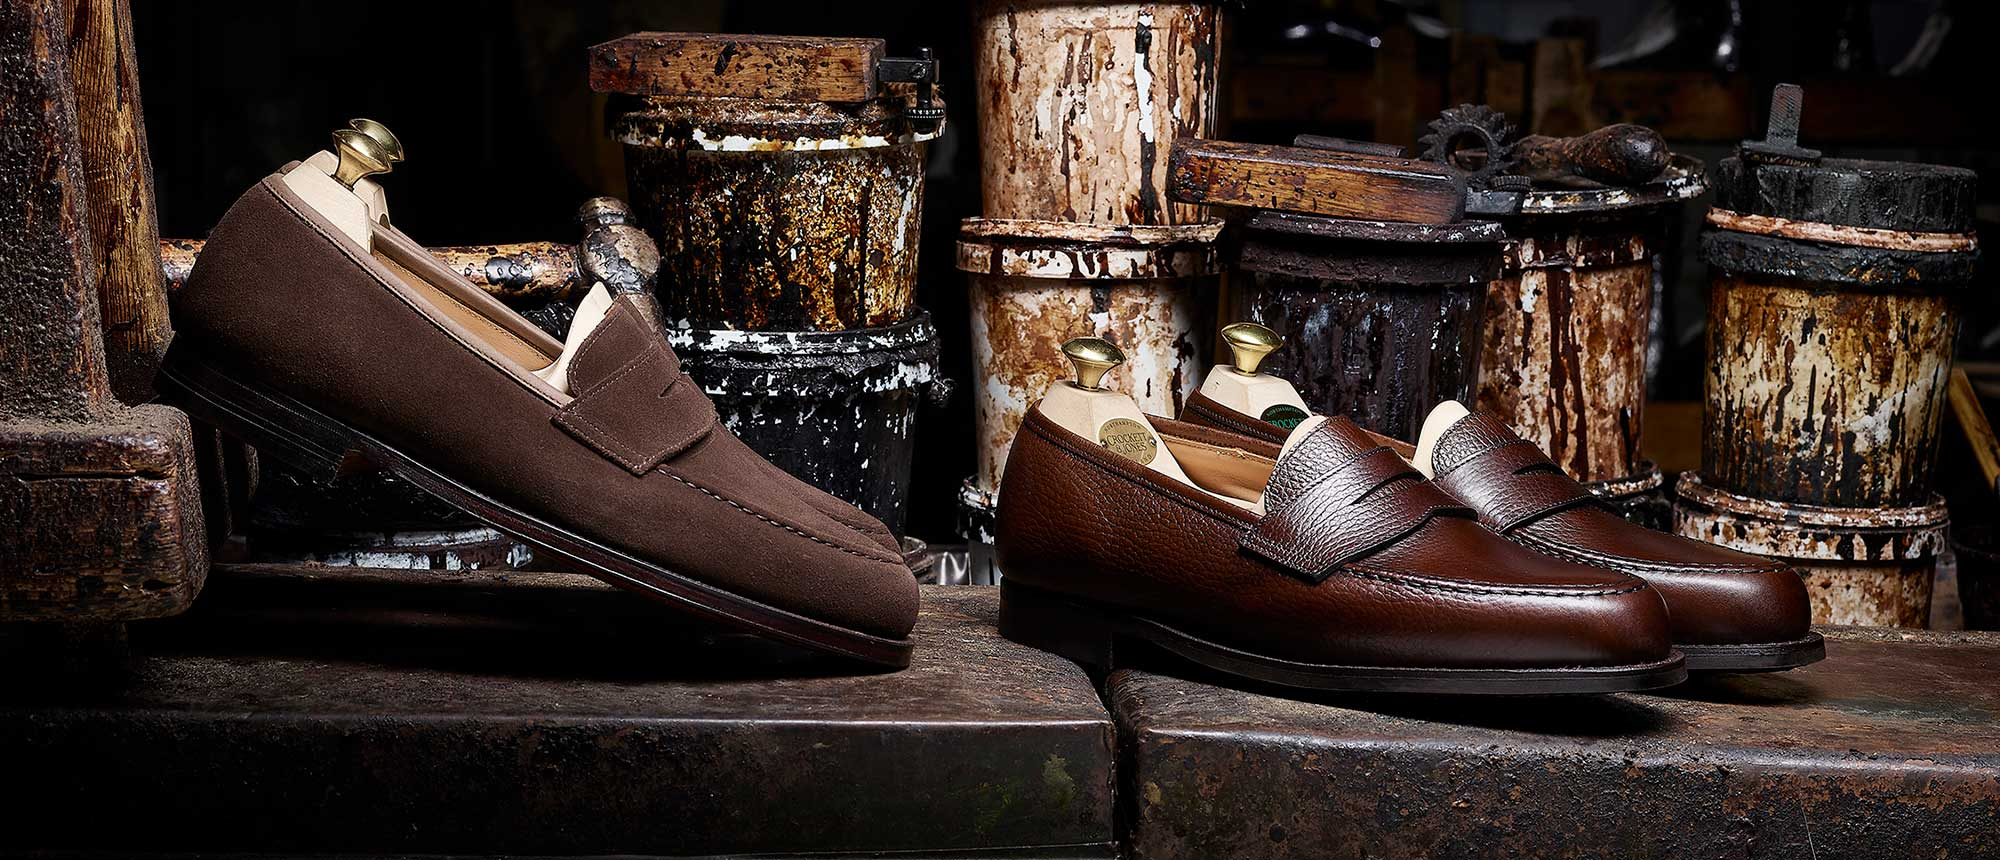 Crockett & Jones - The Essentials... Dress Down